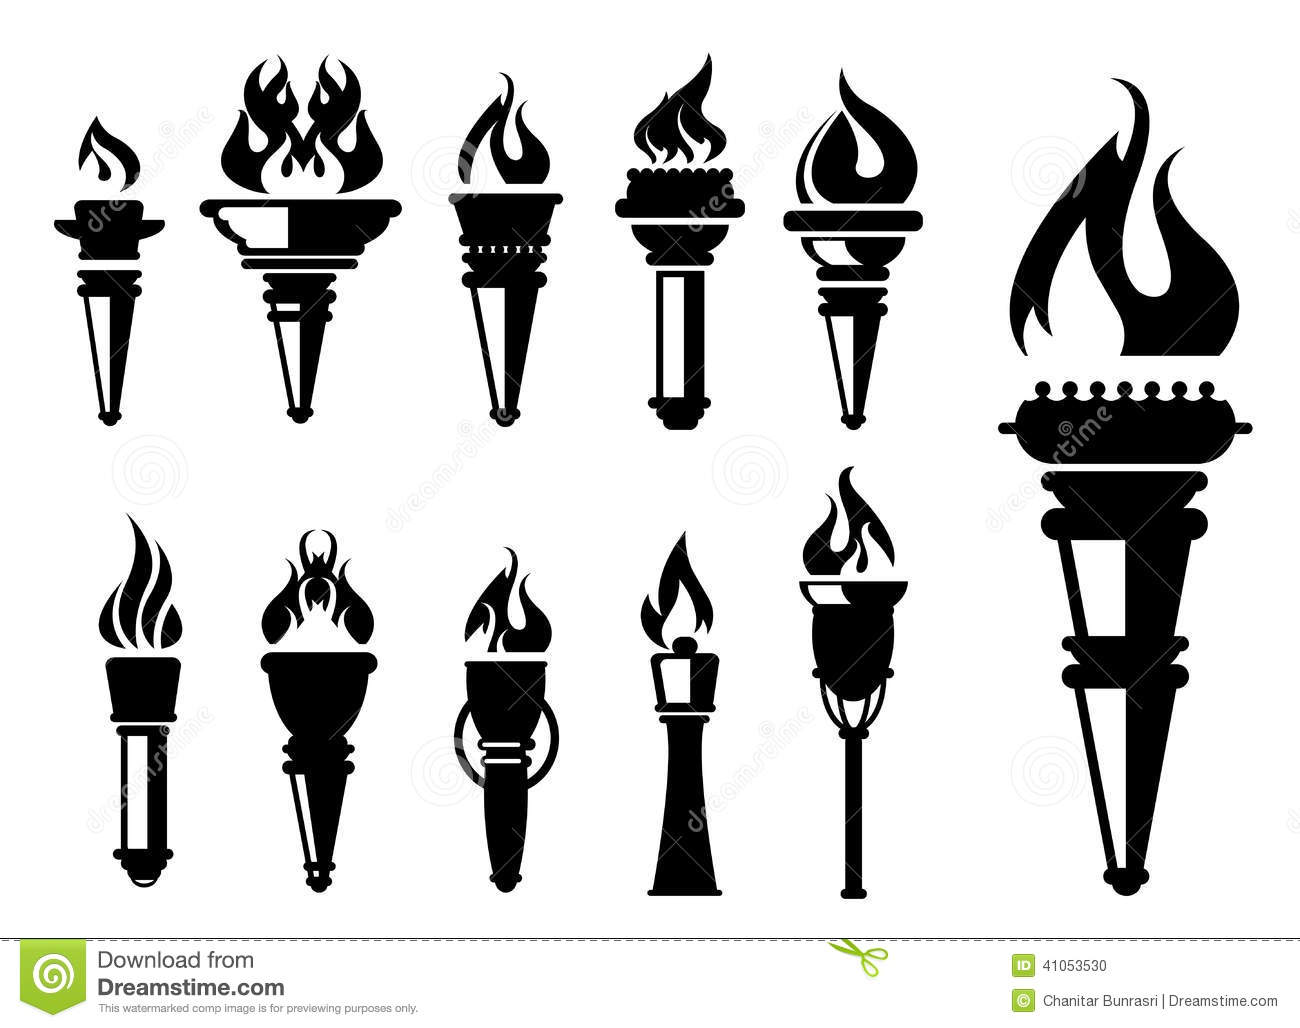 torch clipart black and white 2 | Clipart Station for Torch Clipart Black And White  45hul